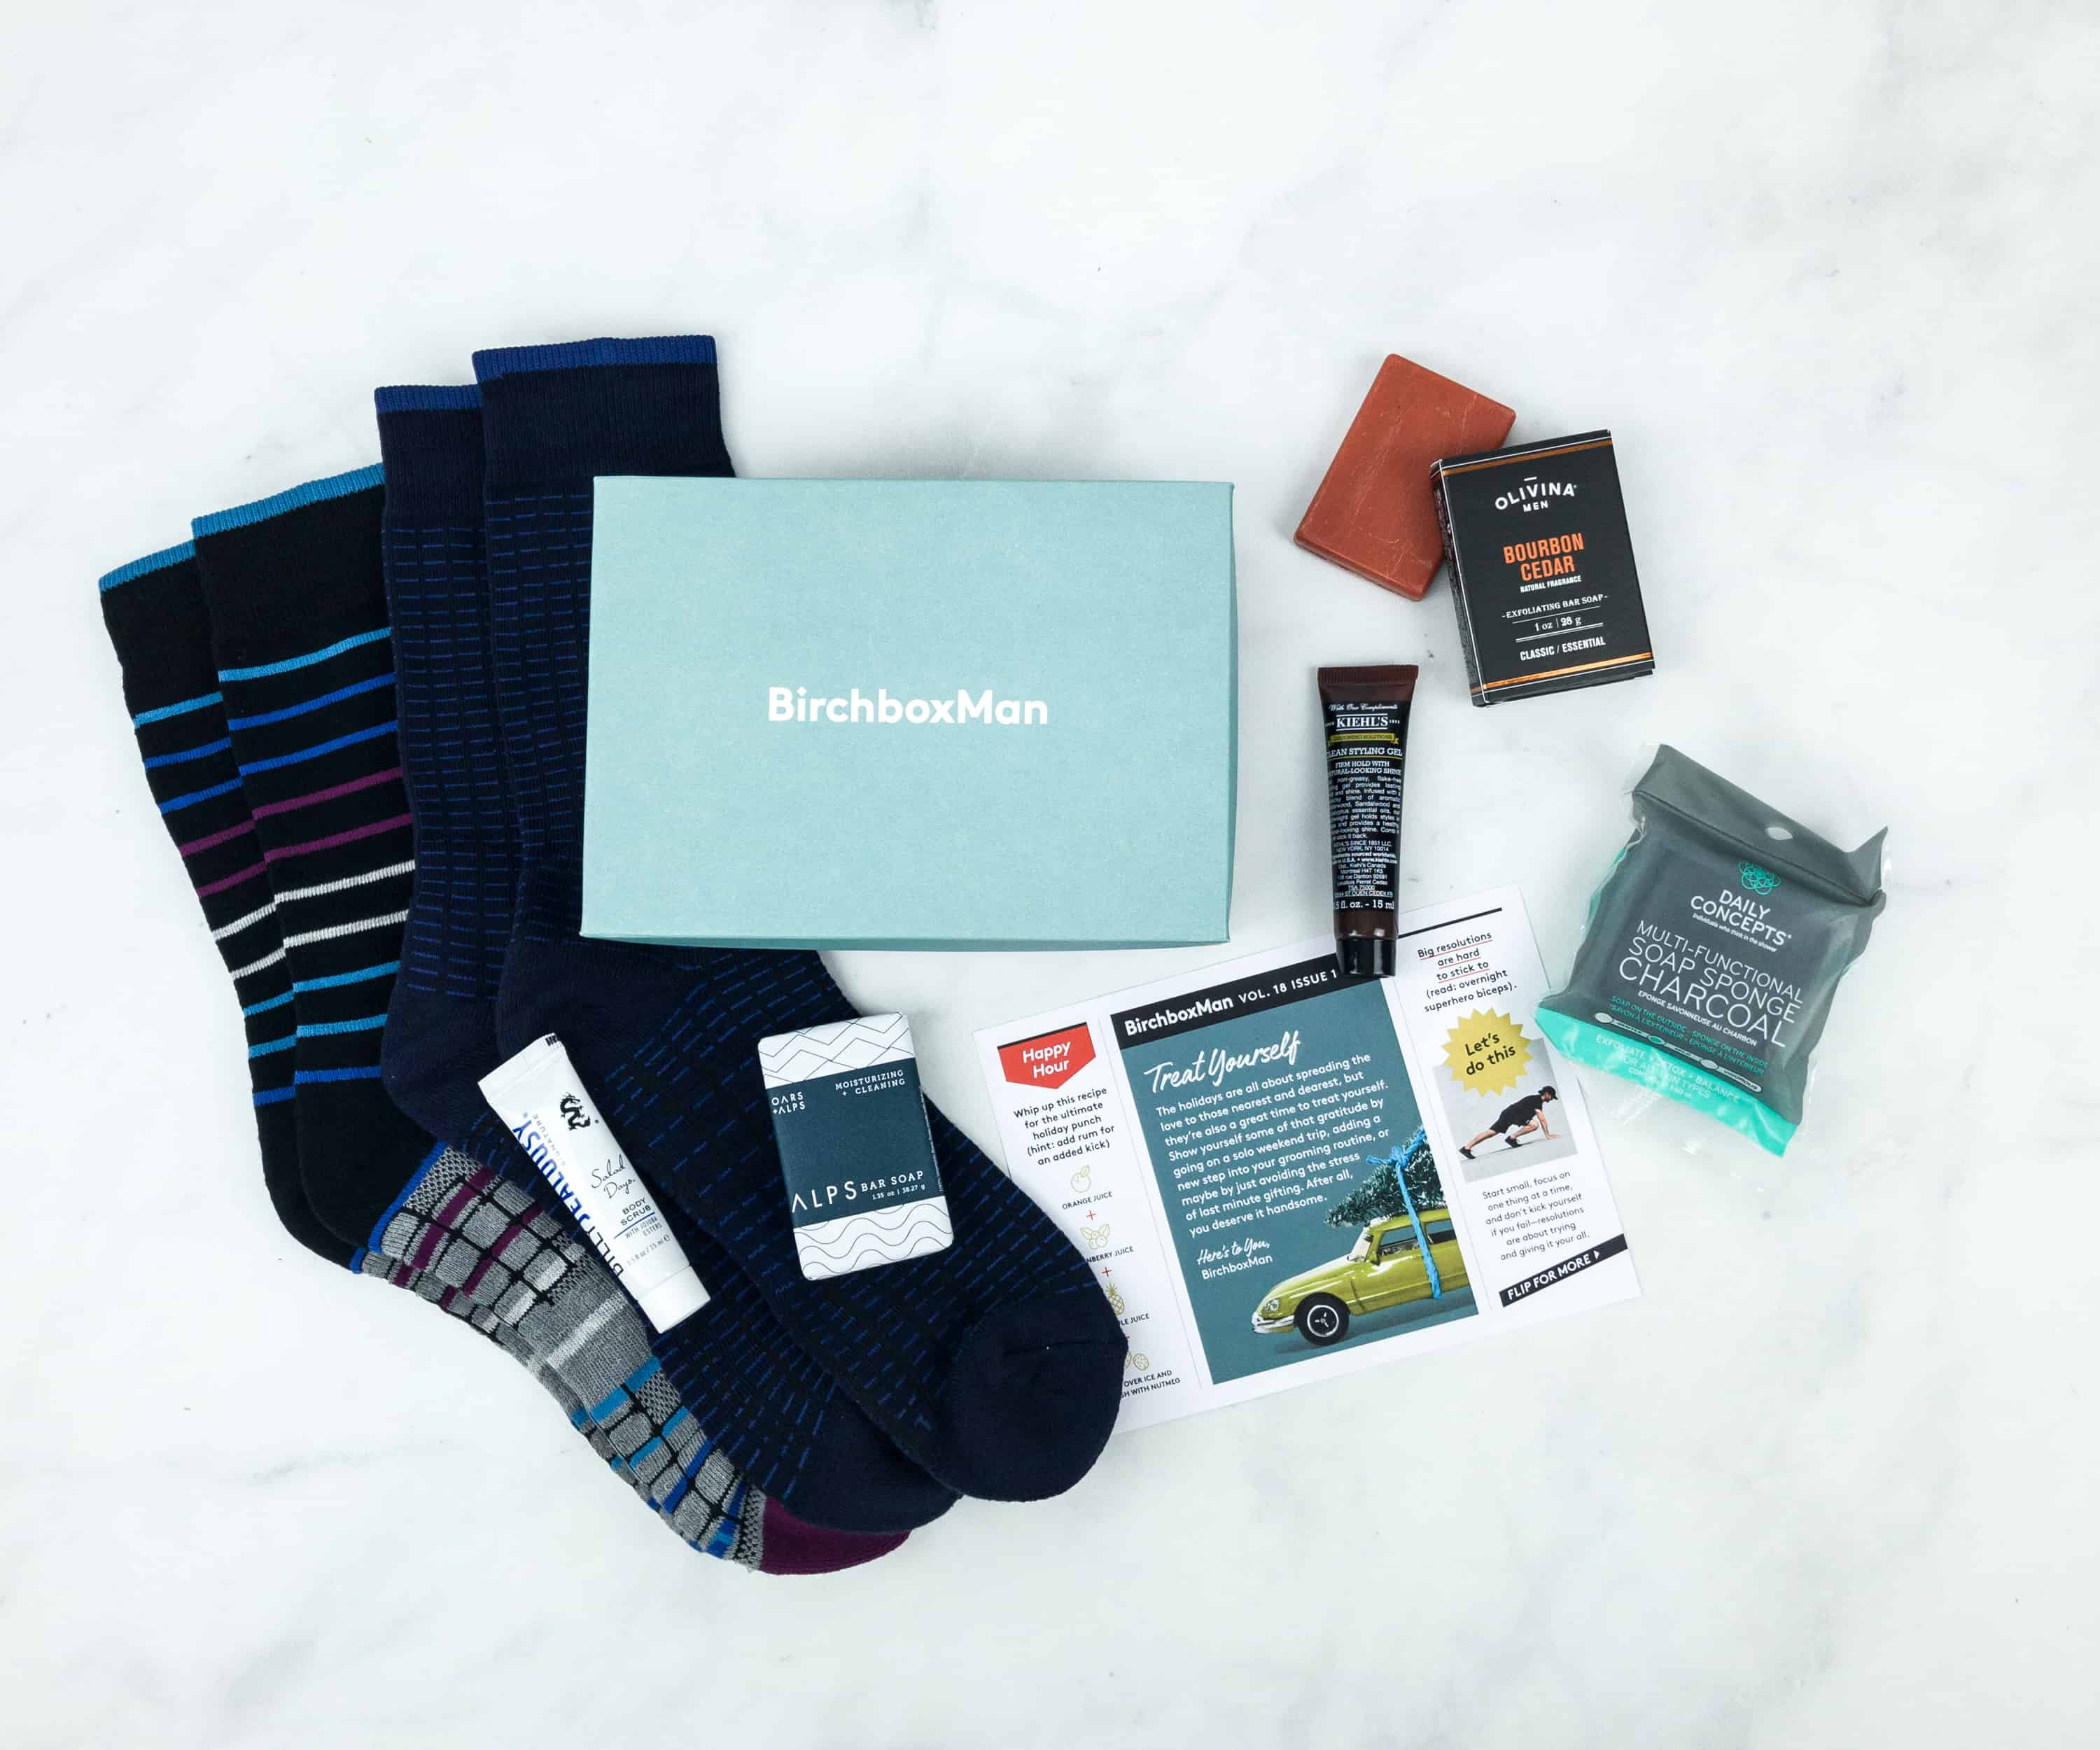 Birchbox Man December 2018 Subscription Box Review & Coupon